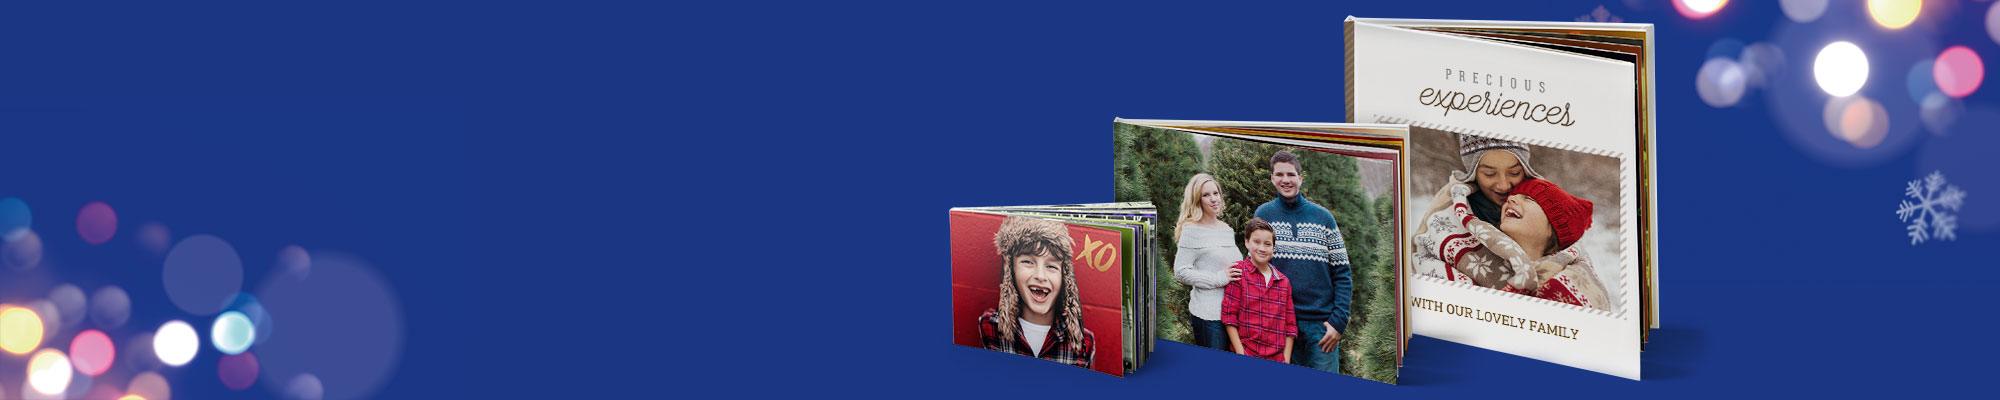 Photo Books The modern photo album - create stylish and personalised photo albums featuring your favourite photos